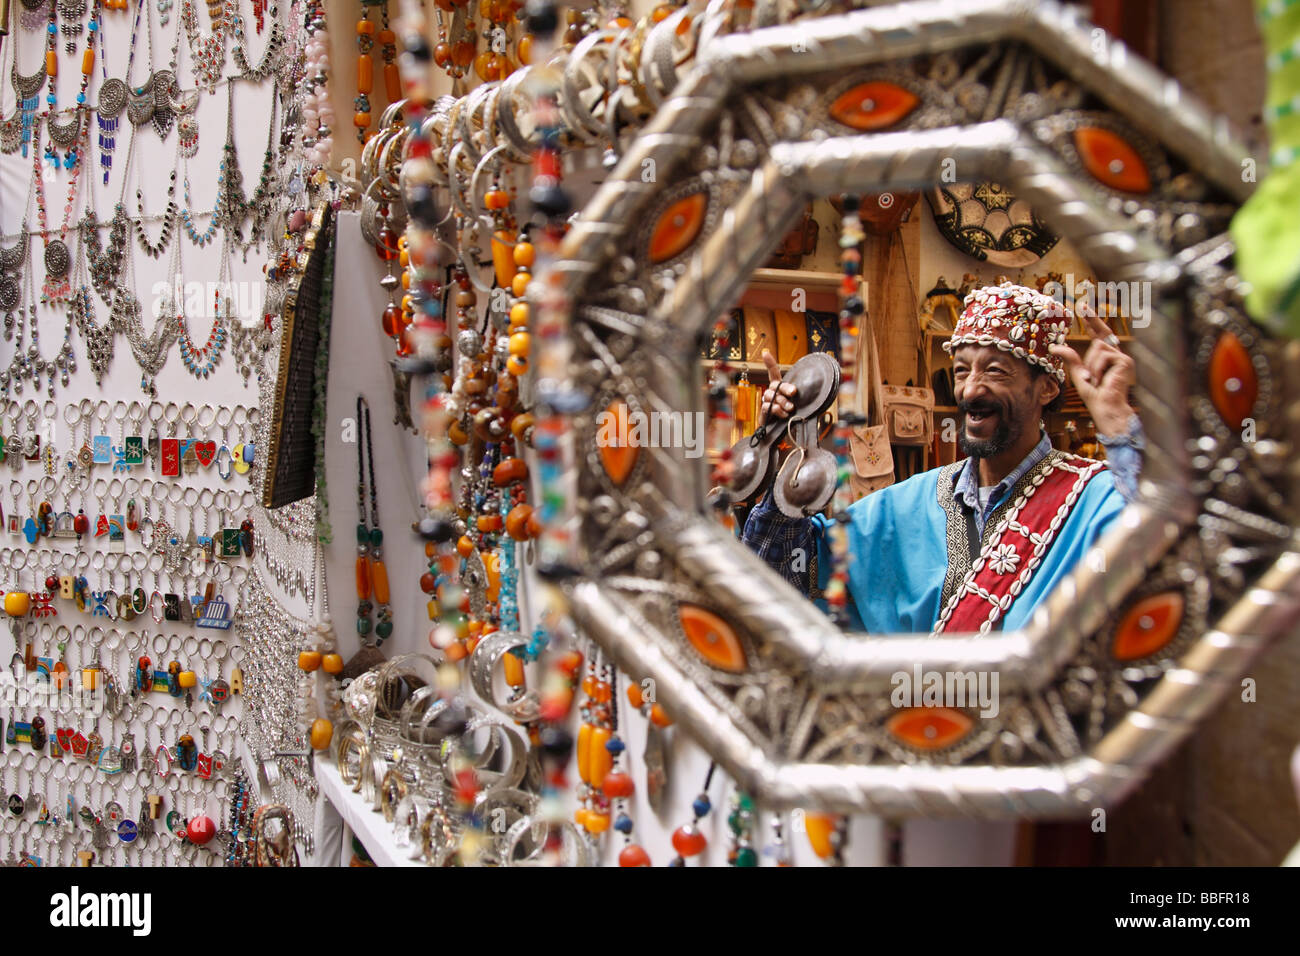 Africa, North Africa, Morocco, Fes, Fès el Bali, Old Fes, Medina, Old Town, Shop Front, Mirror, Street Entertainer - Stock Image